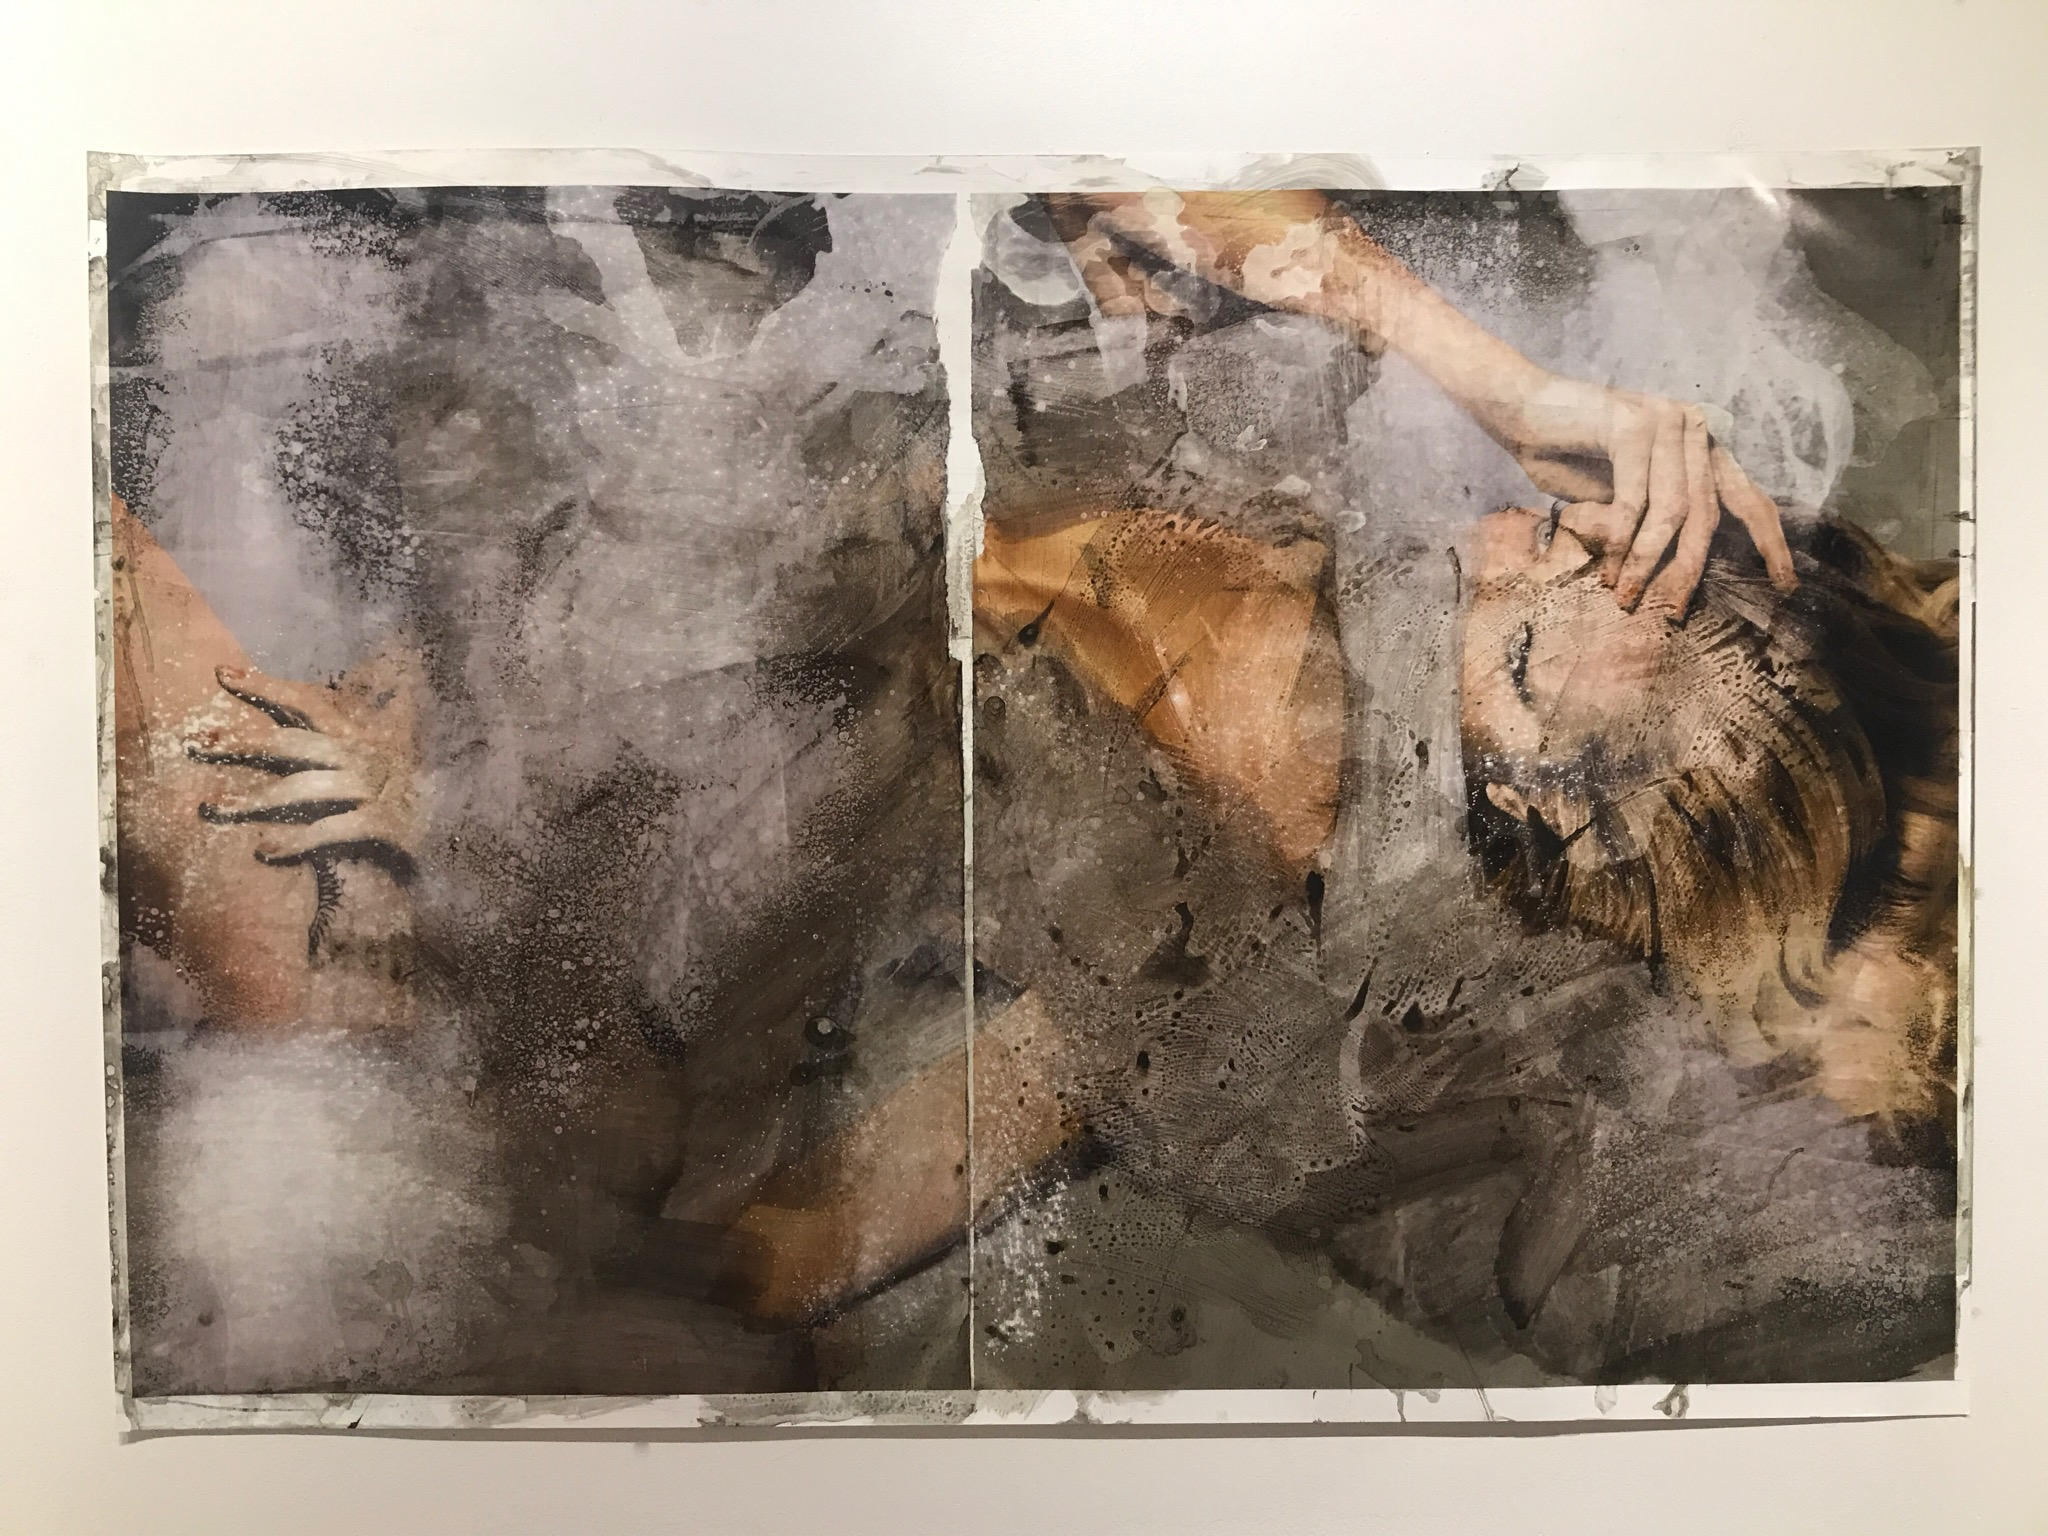 Eradication   2017  36 x 53 in.  Citra solv on magazine, nail polish remover, bleach, glass cleaner, and windex on photo paper